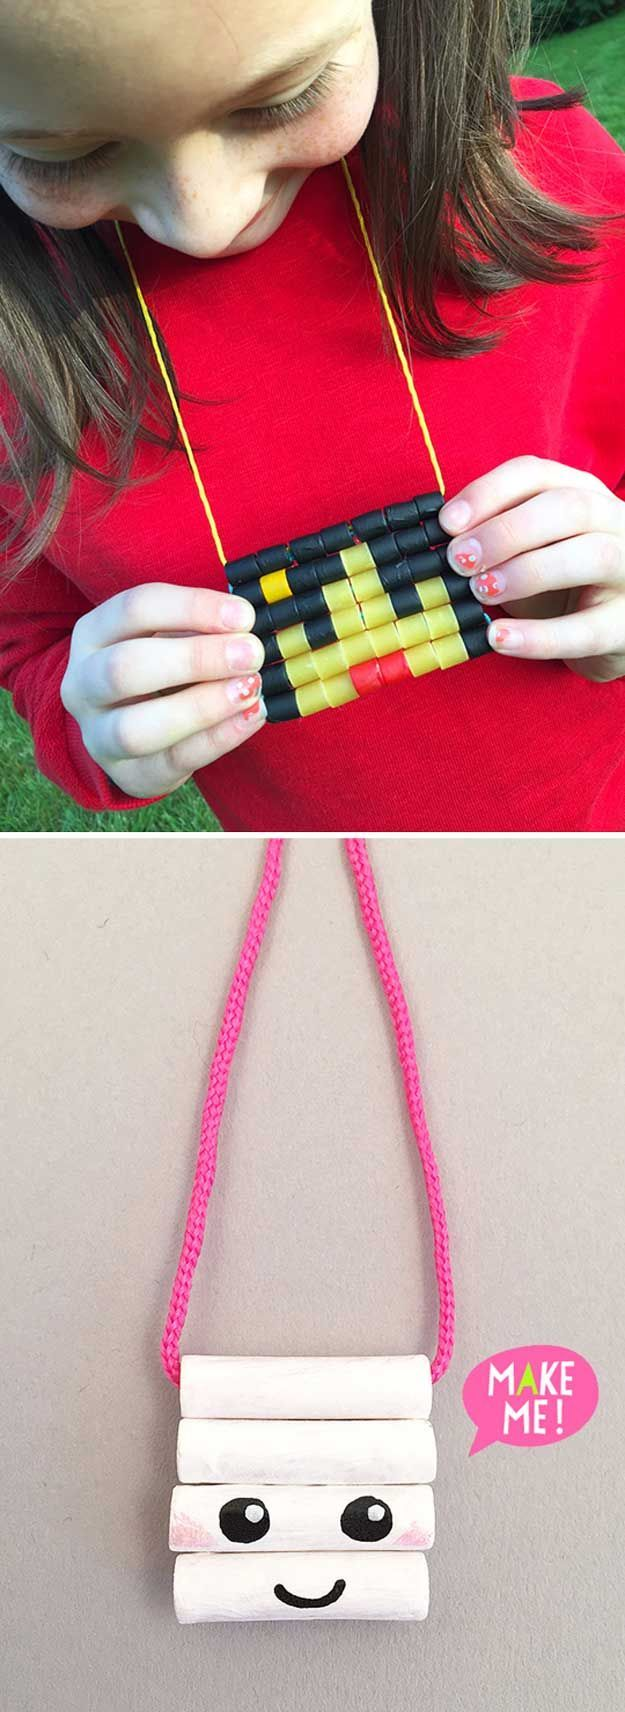 Cheap jewelry projects for girls macaroni necklace homemade painted macaroni necklaces 22 cheap diy jewelry projects for girls cute and beautiful handmade solutioingenieria Images